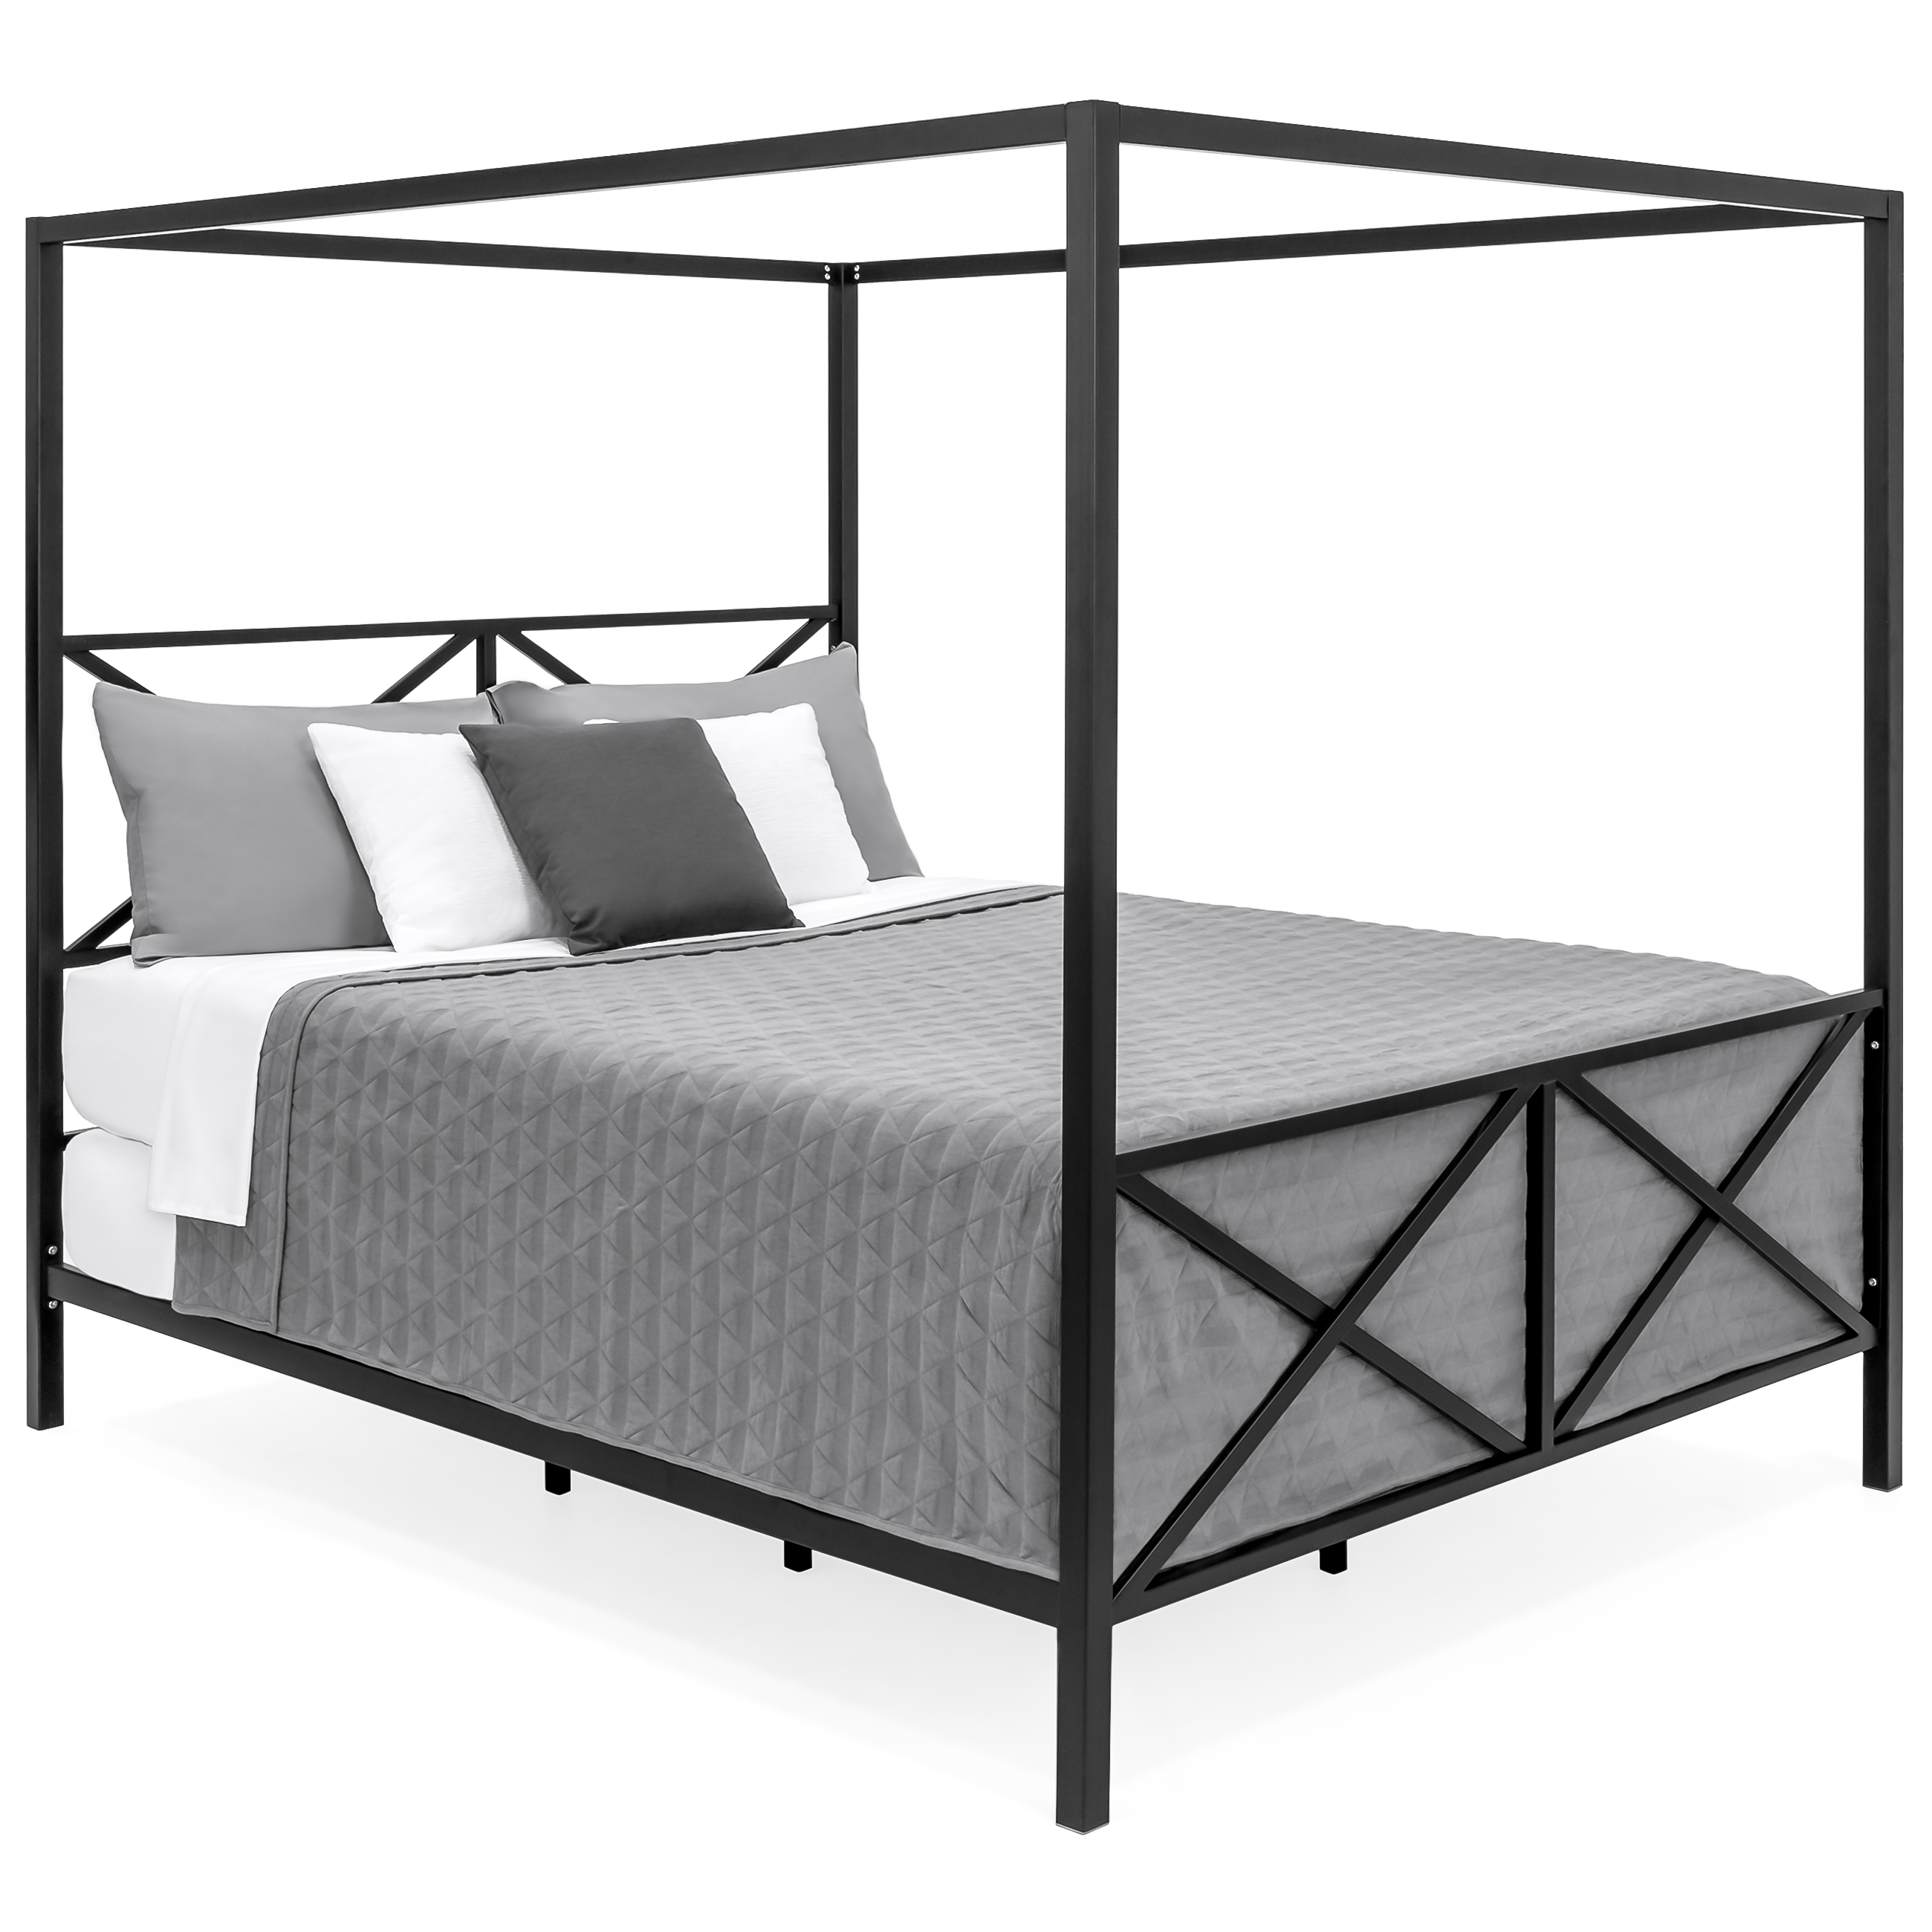 Best Choice Products Modern 4 Post Canopy Queen Bed w/ Metal Frame